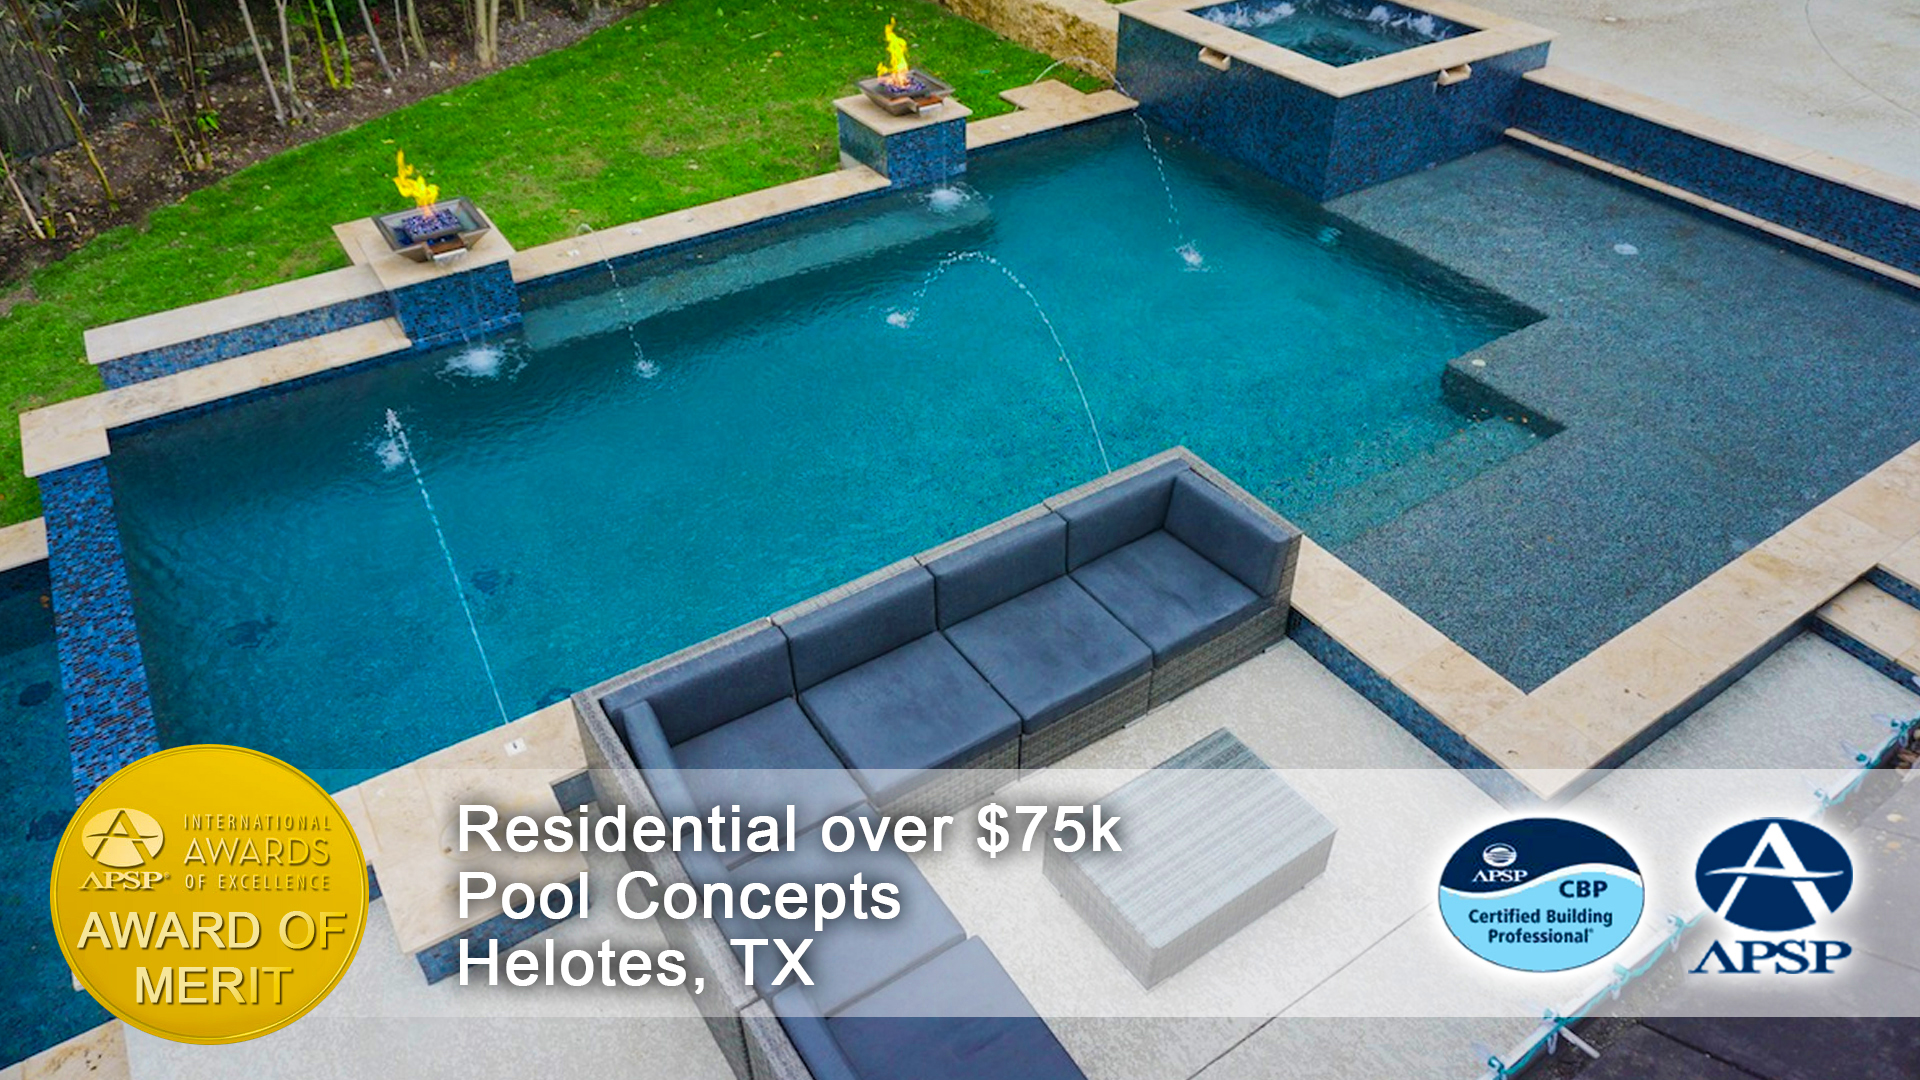 pool design concepts llc san antonio swimming pool builder pool concepts